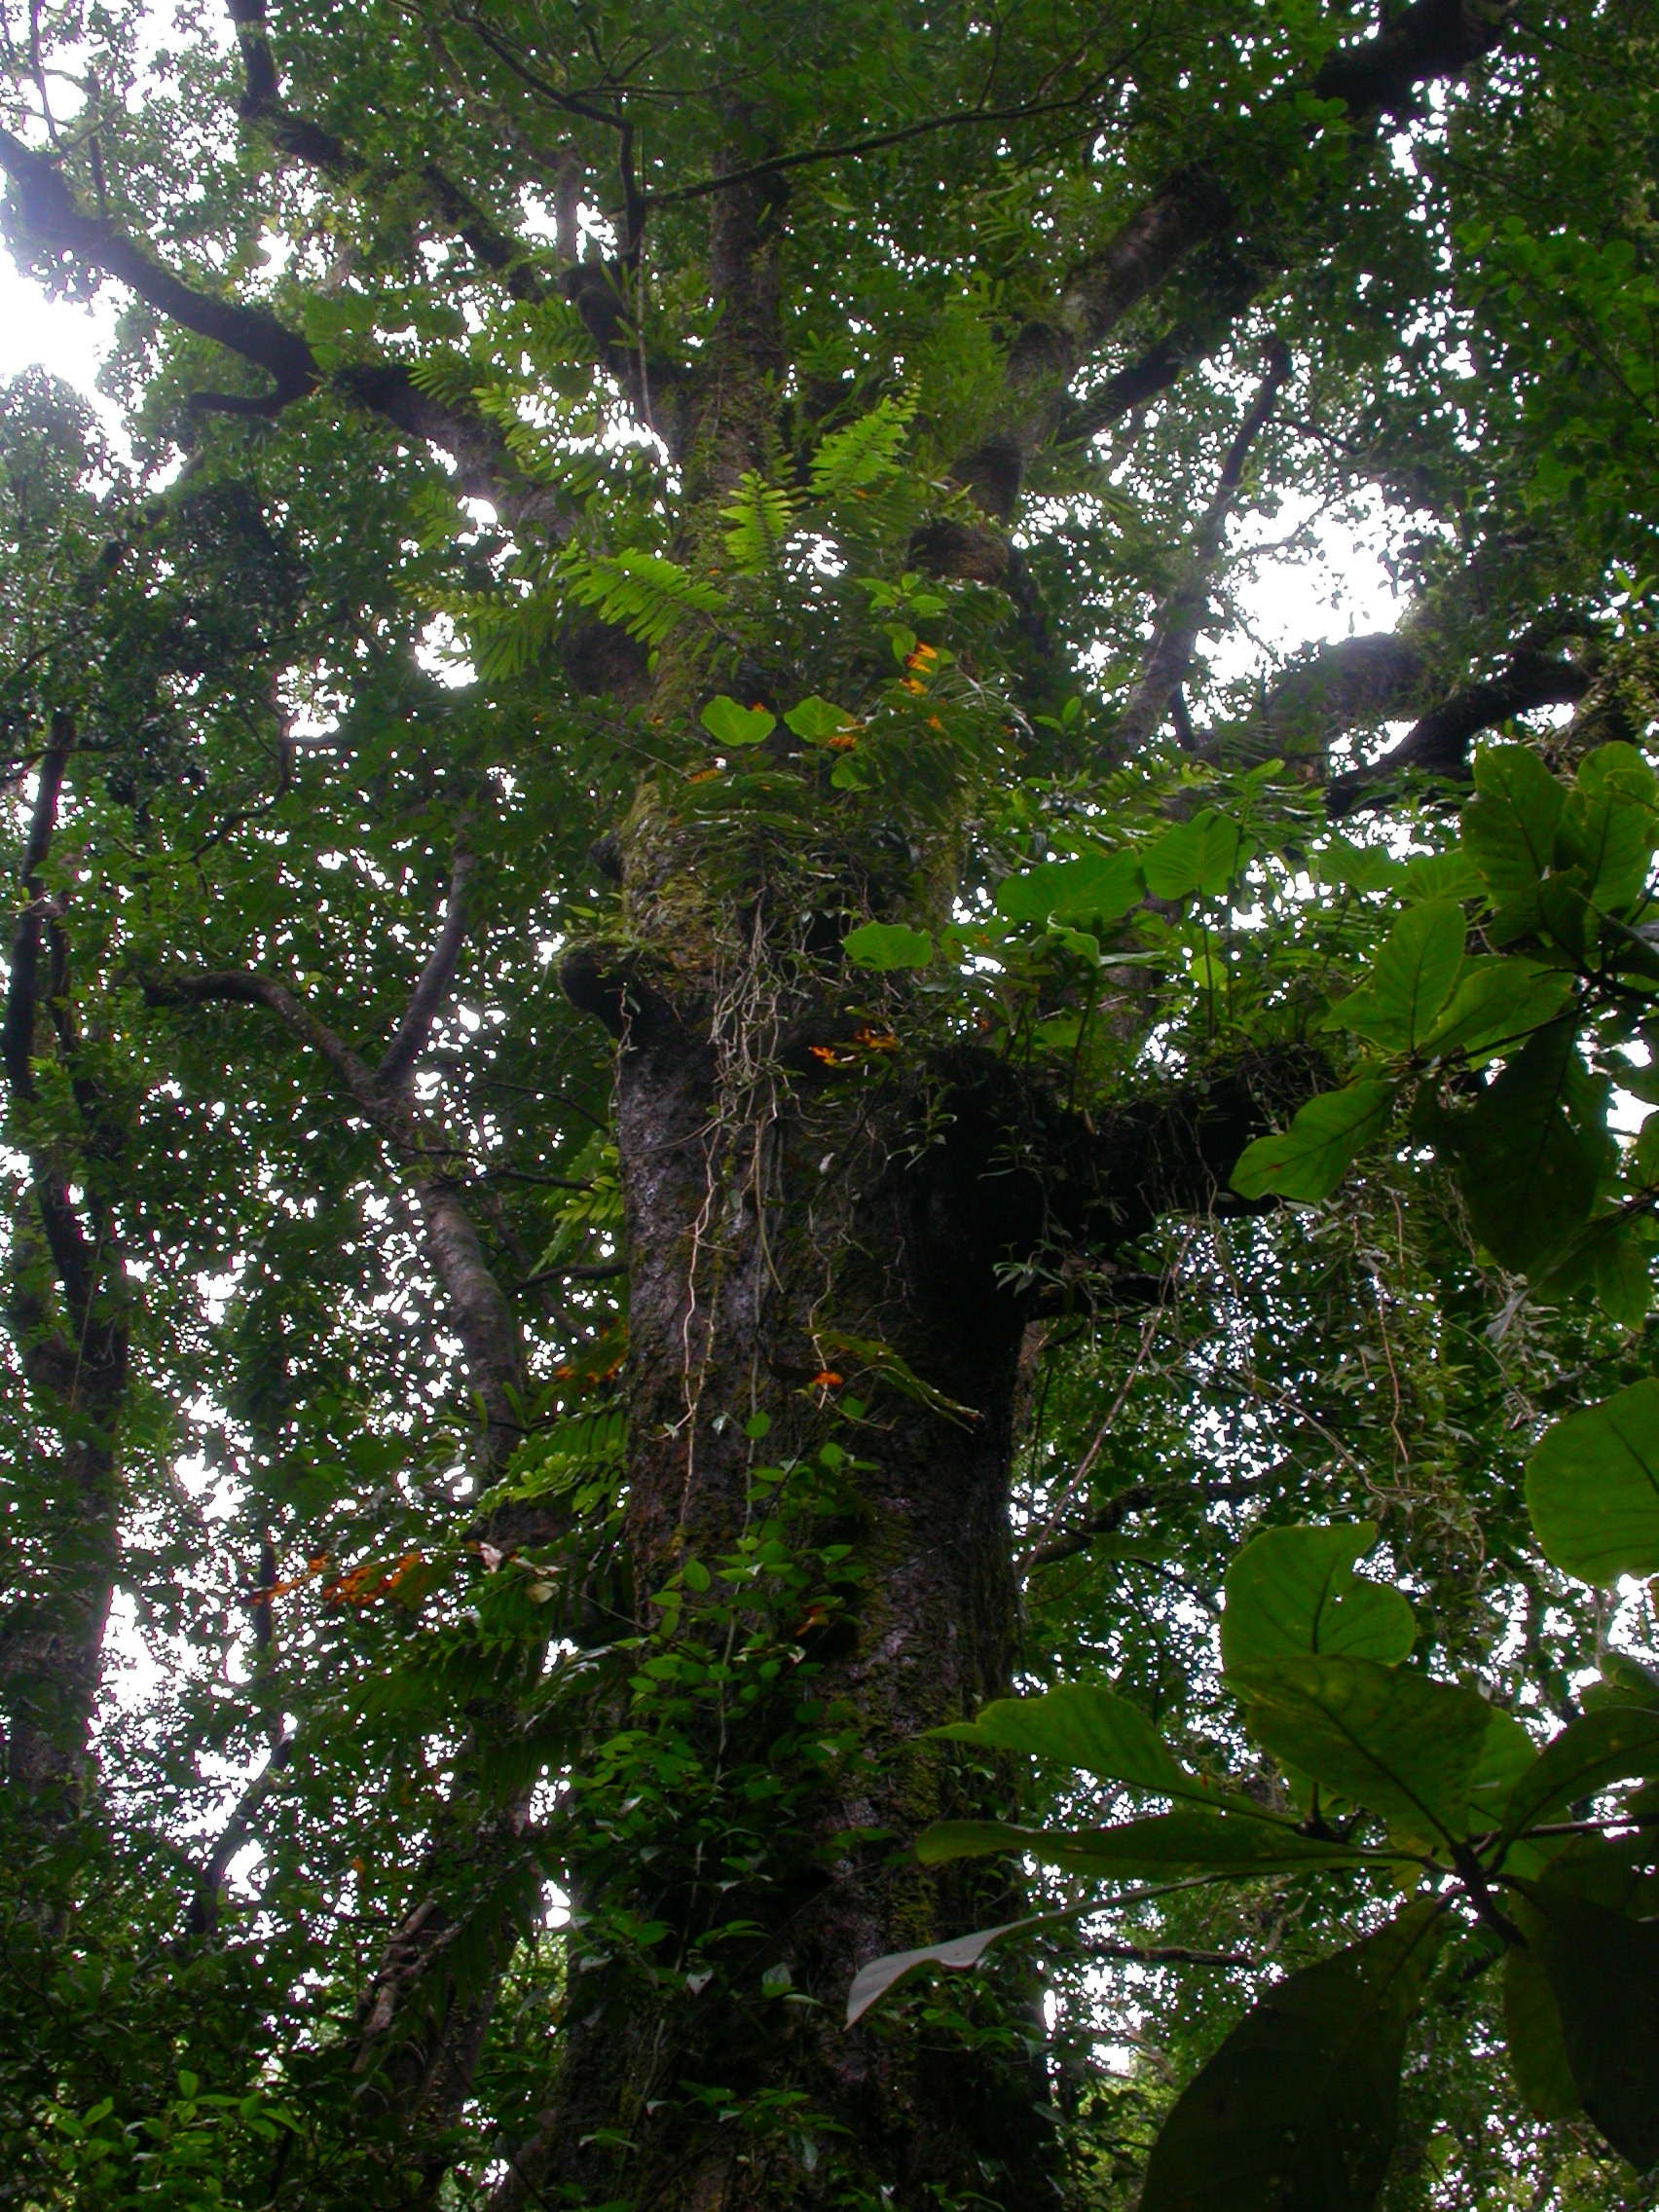 Forest tree with creepers and epiphytes.